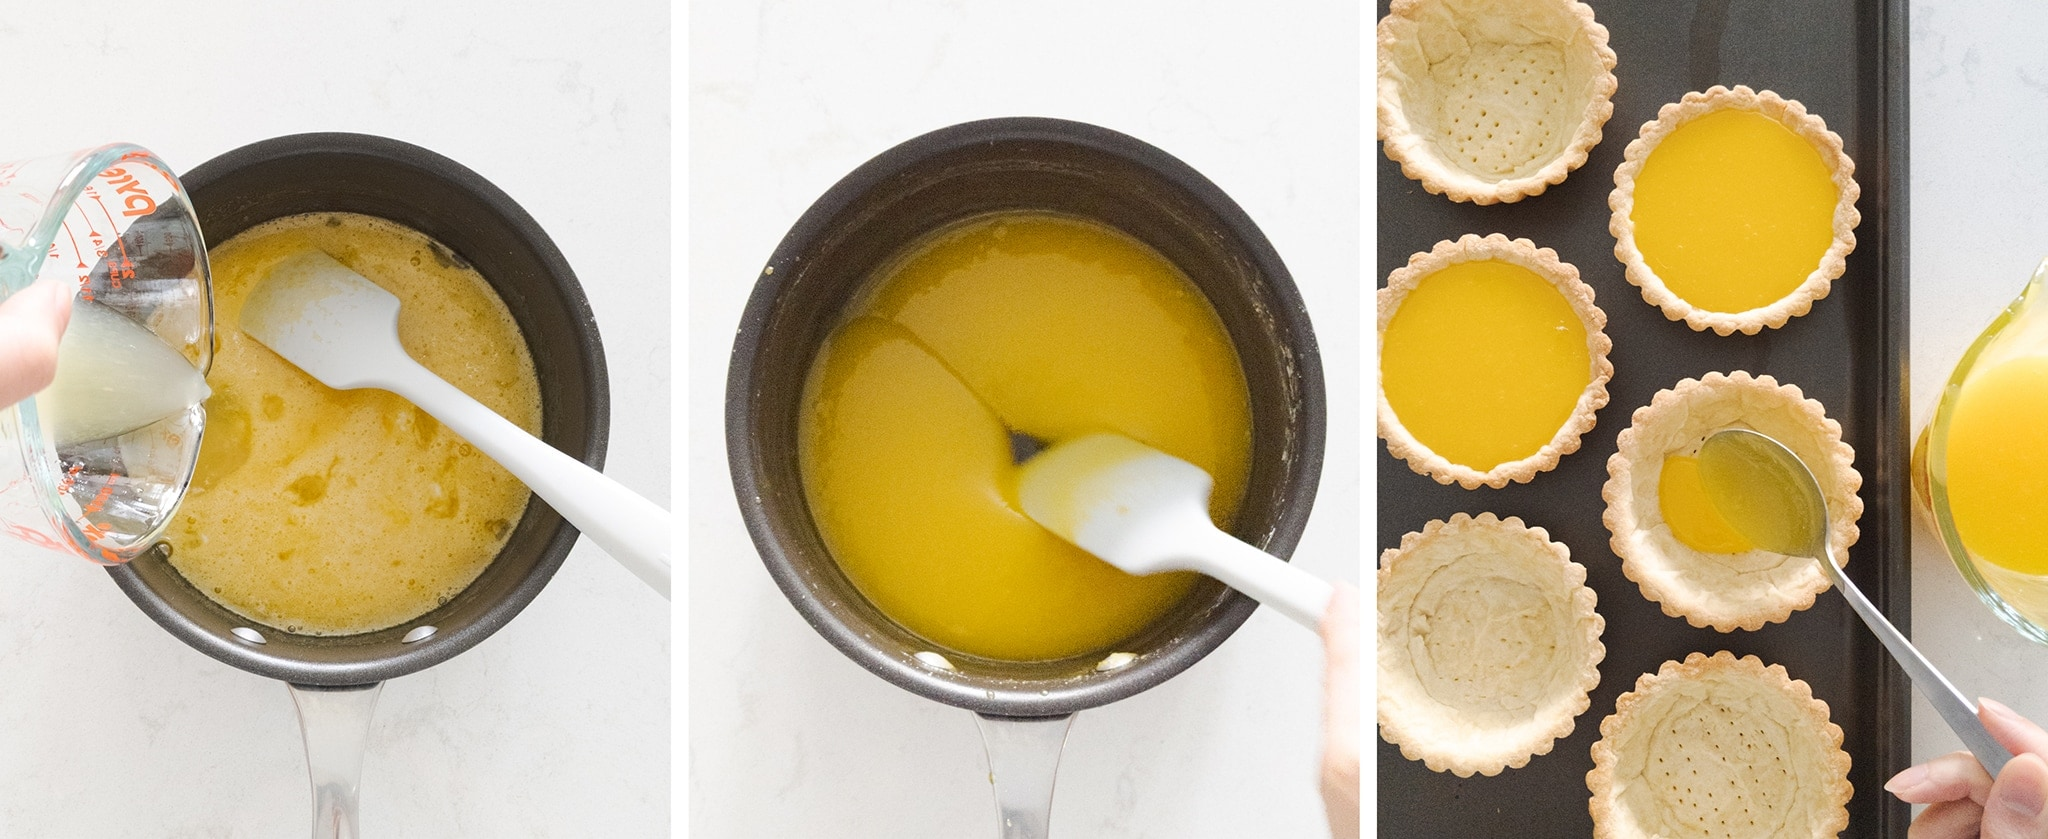 Making and filling tarts with lemon filling